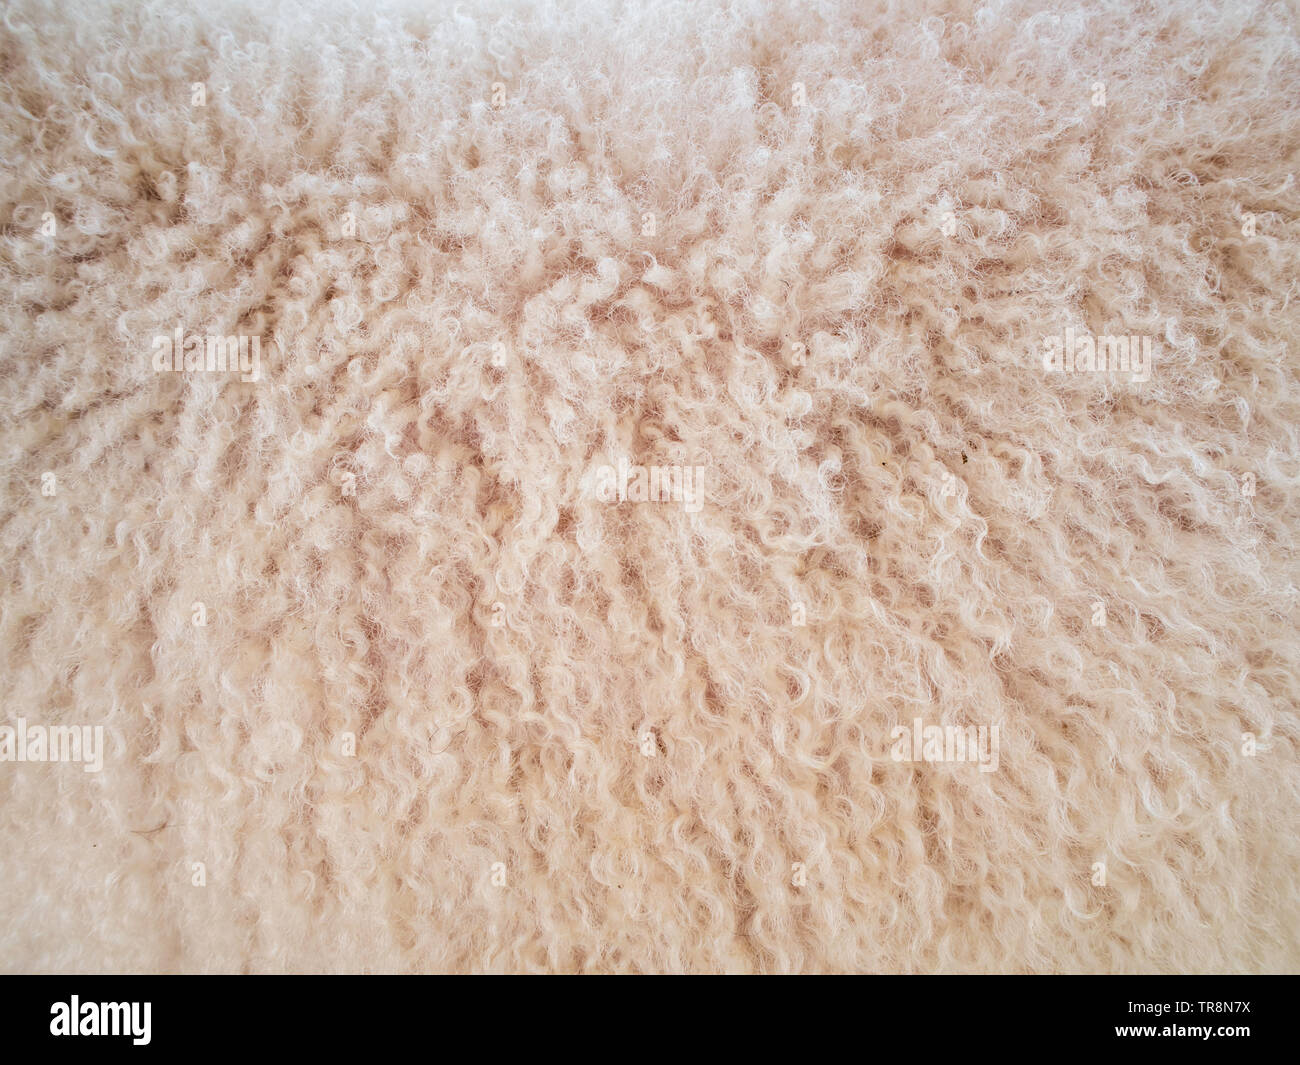 Soft and fluff long sheep wool - Stock Image